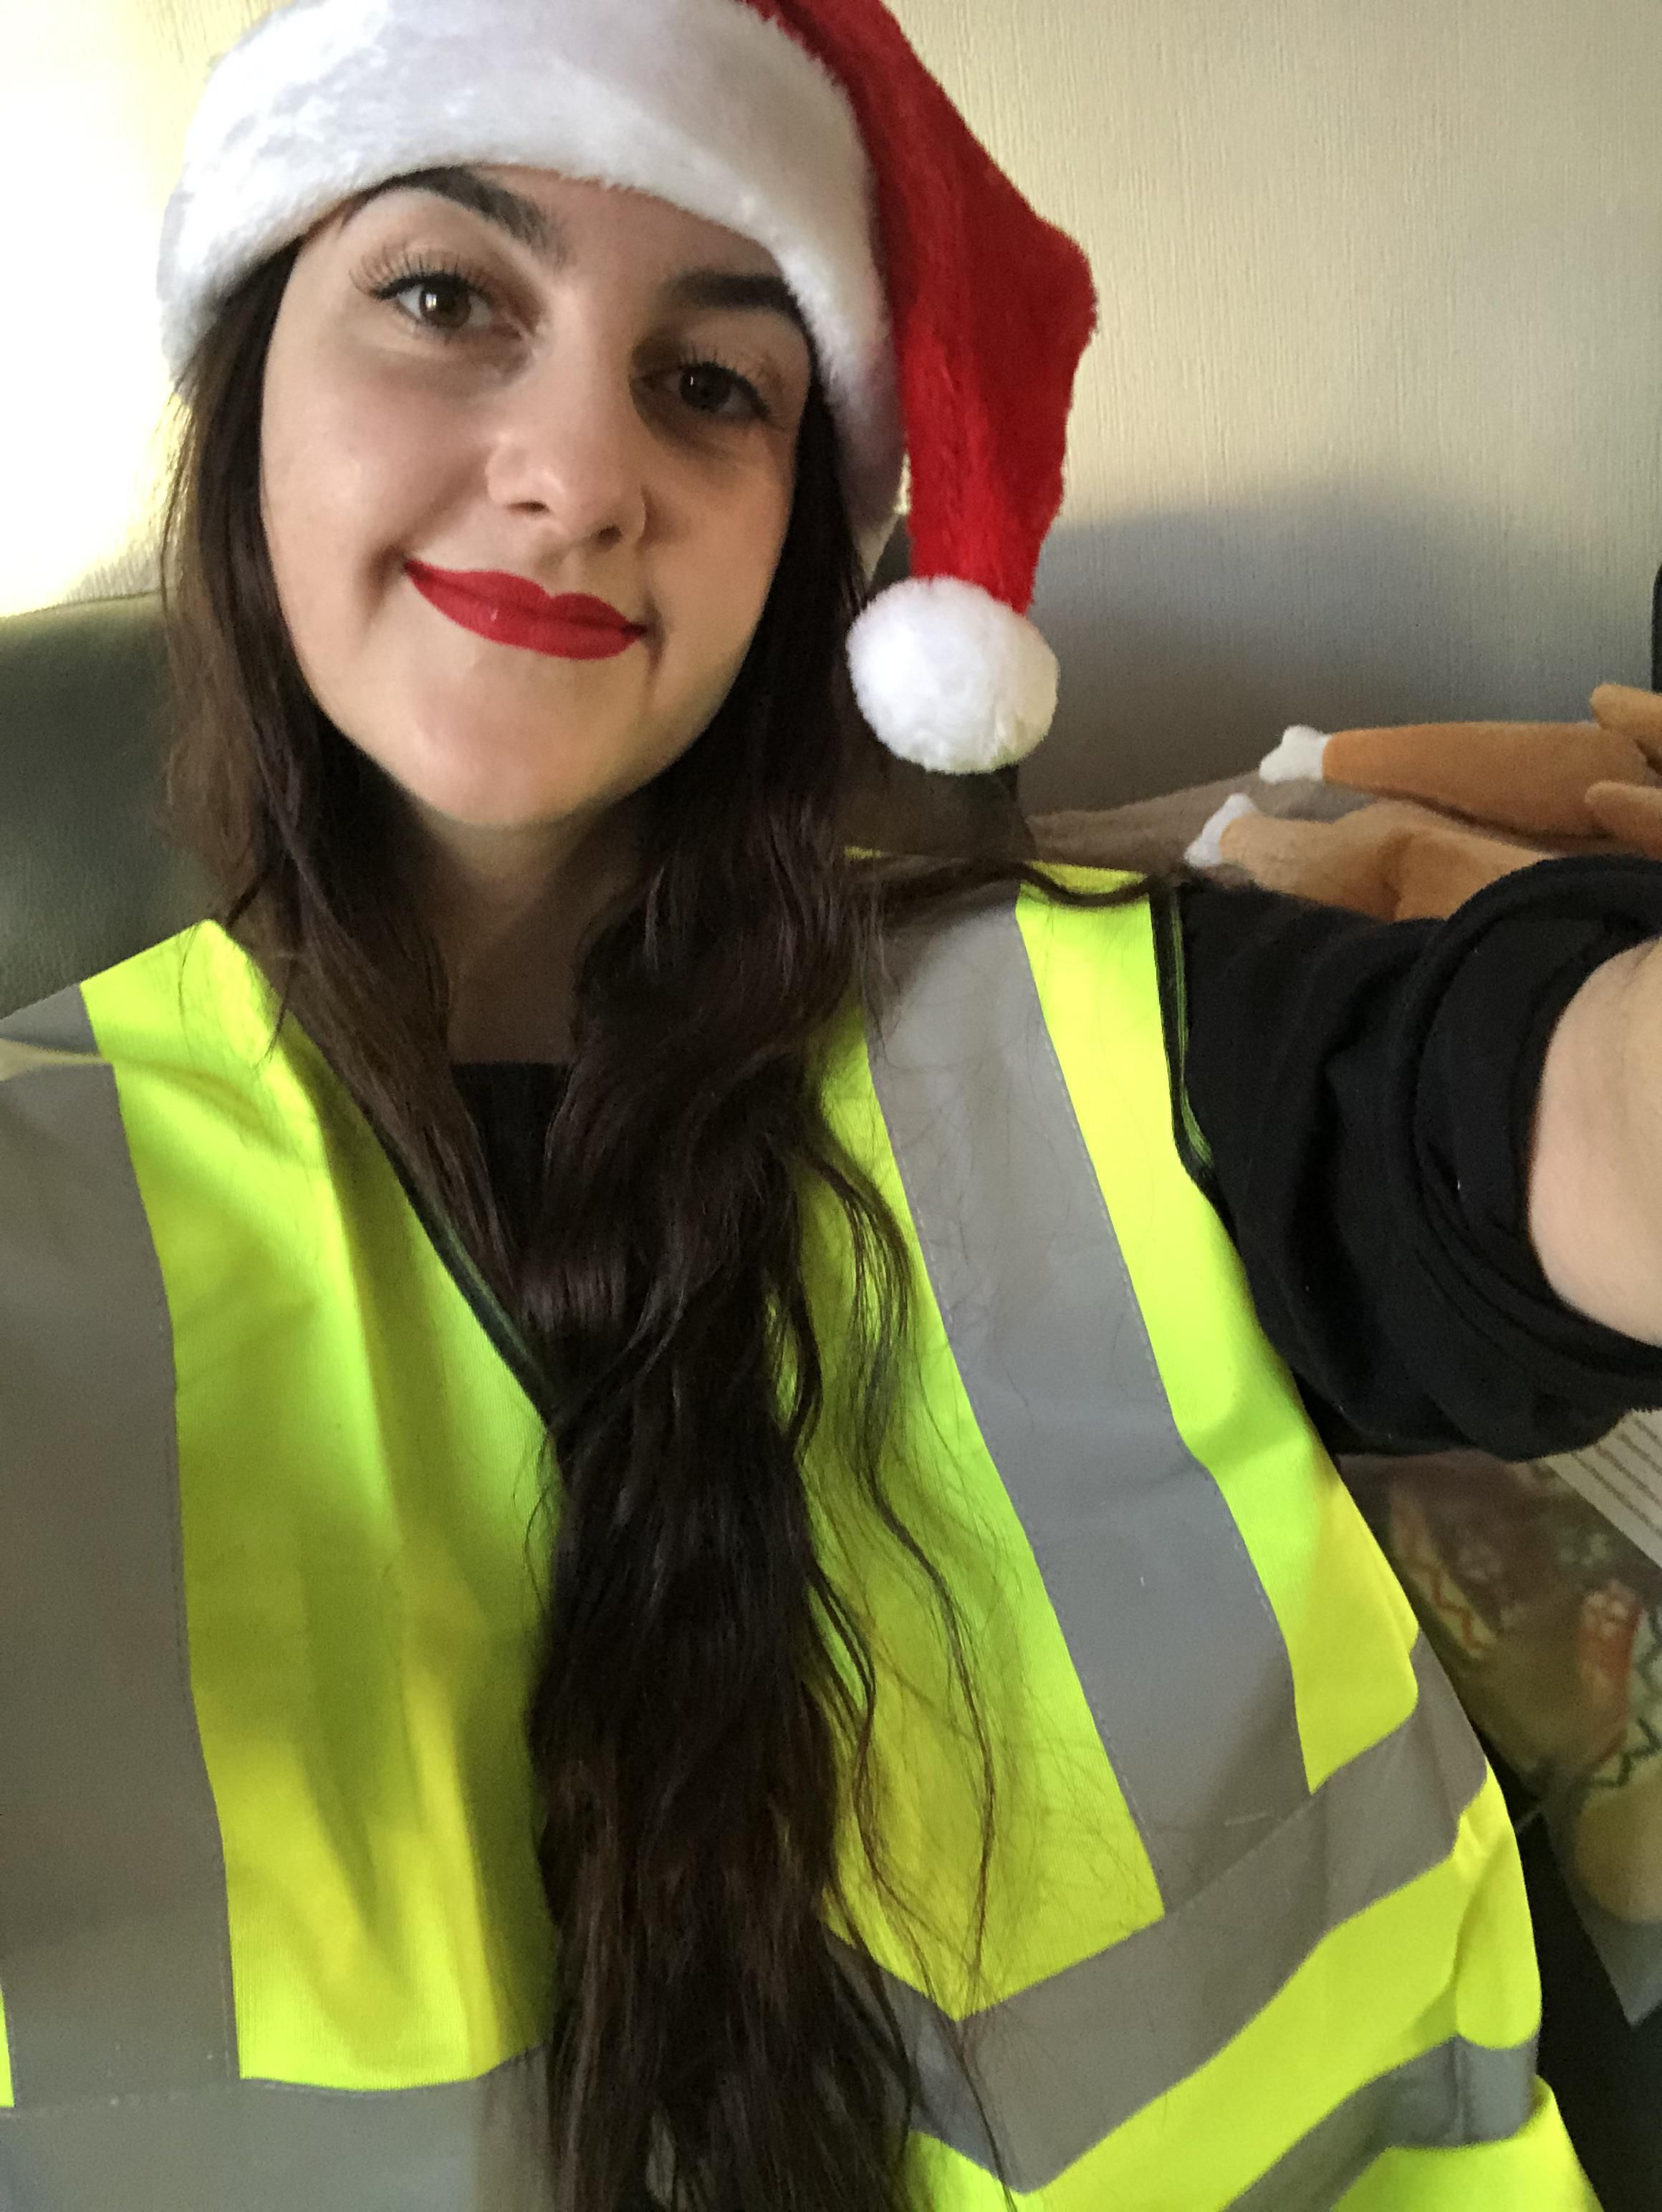 Dad chose a present for me this year without mum's help. Merry Christmas from me and my new XL-sized high-vis...